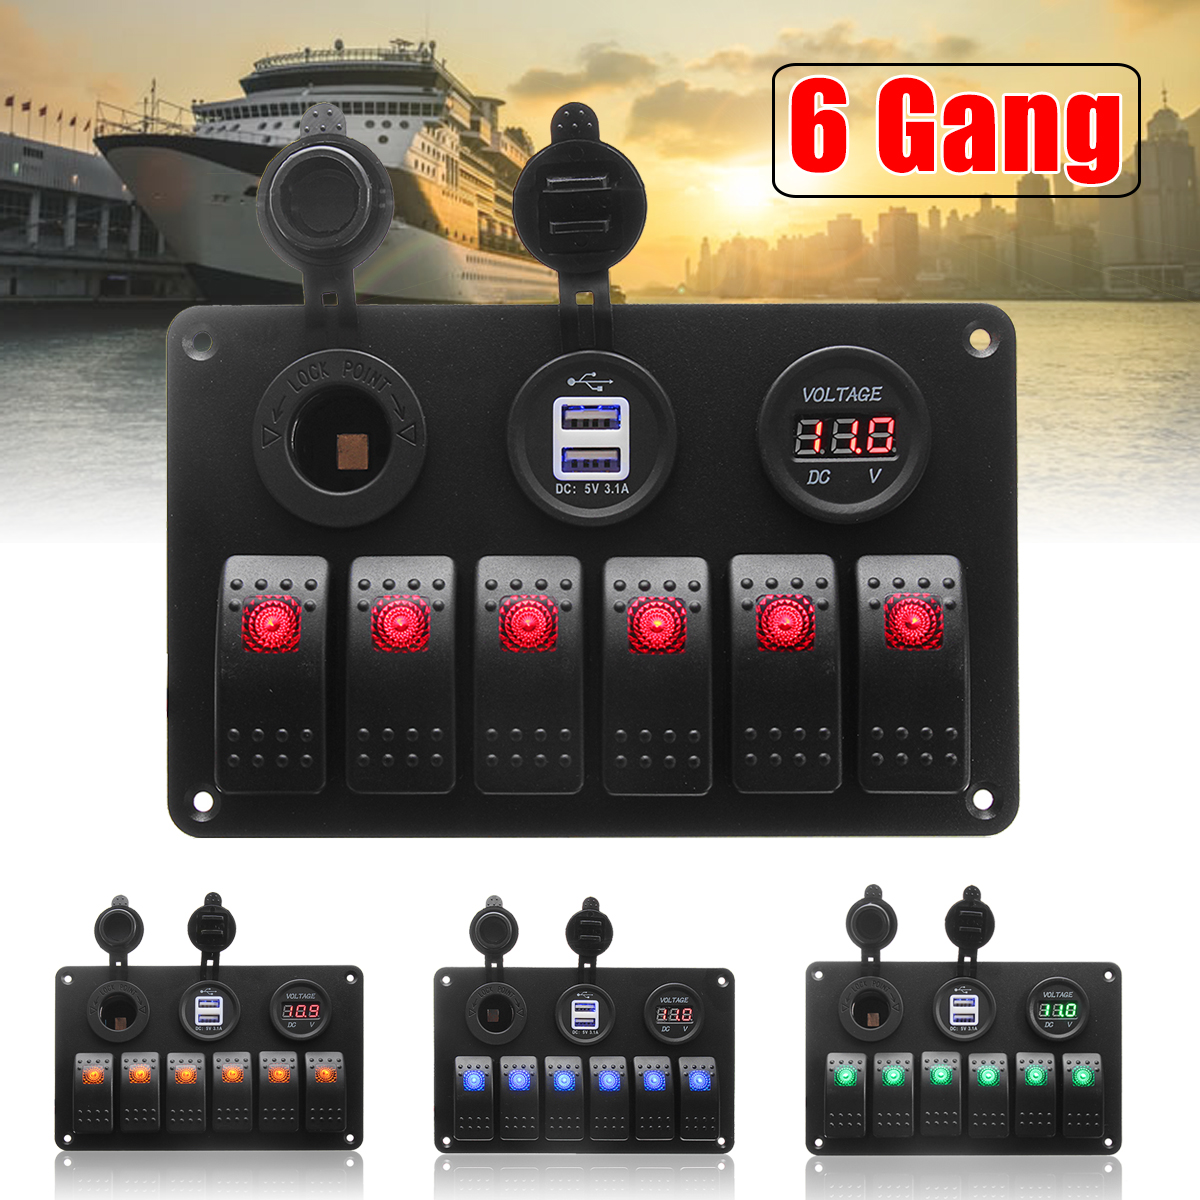 6 Gang 5 Pin 12V 24V LED Rocker Switch Panel Circuit Breaker Charger Dual USB Socket Cigaretter Plug Voltmeter Car Auto Charger